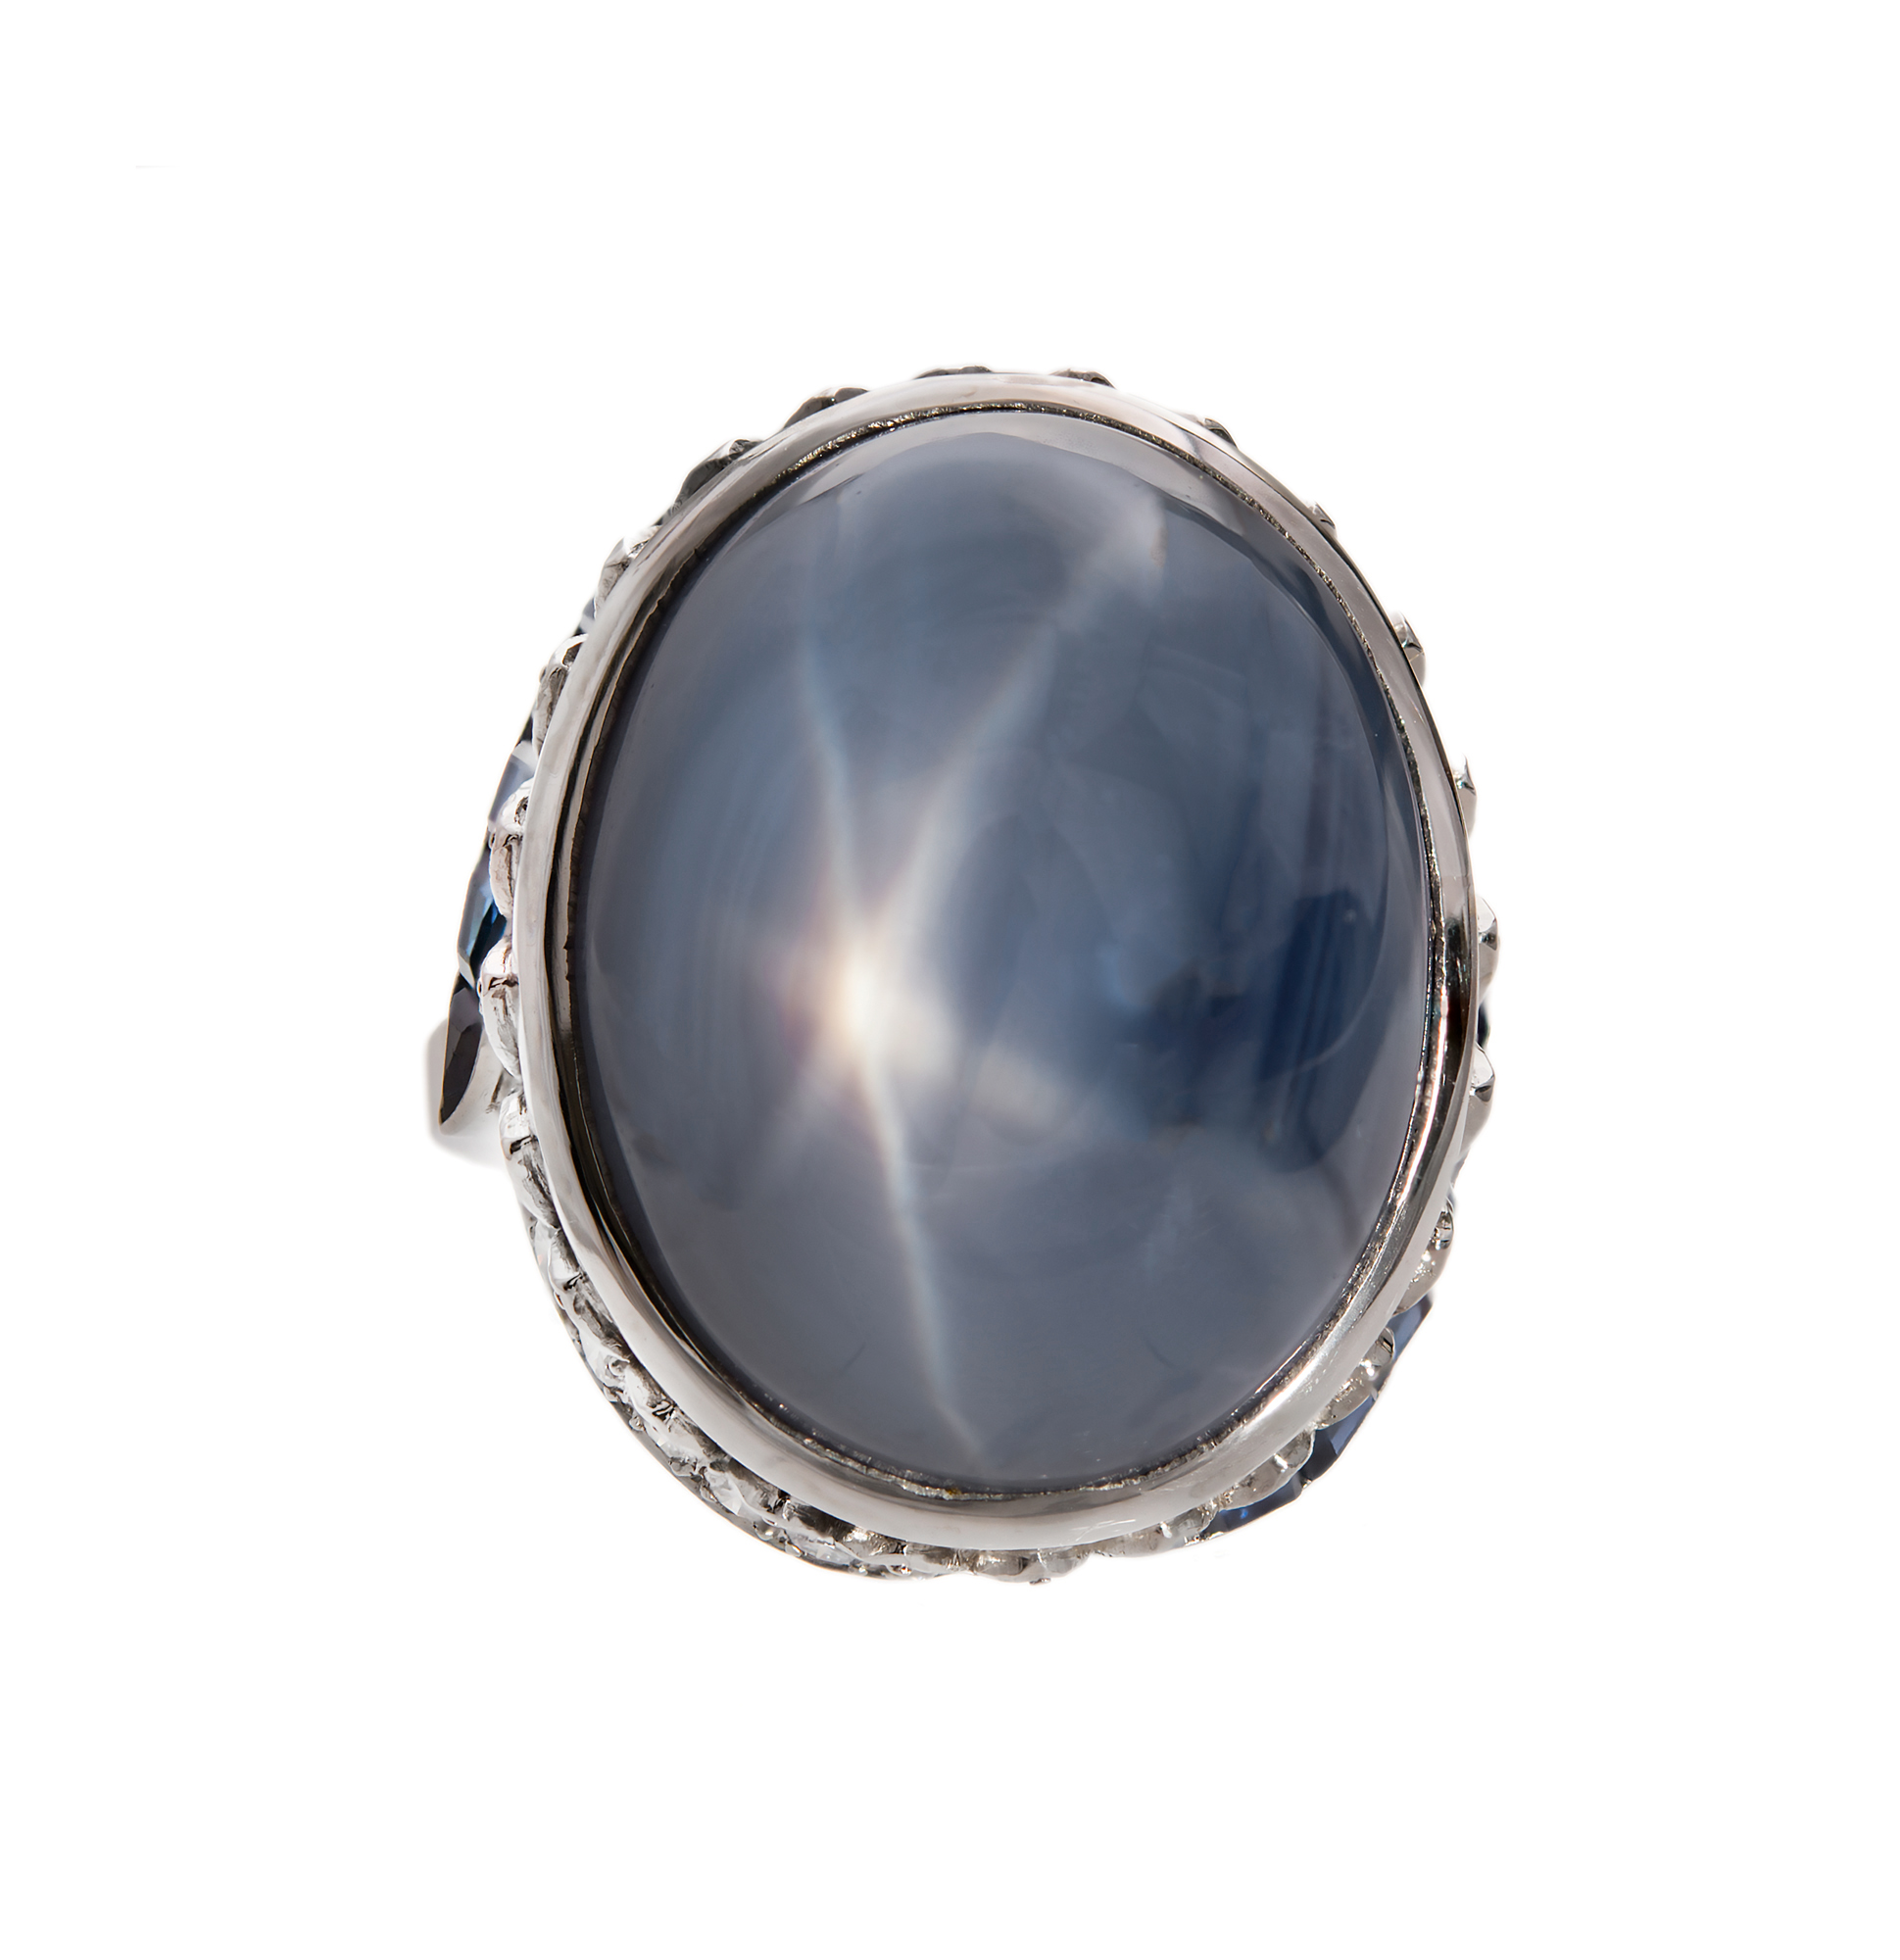 """""Vintage 18K White Gold with 52.5ct Star Sapphire & Diamond Ring Size"""""" 2138704"